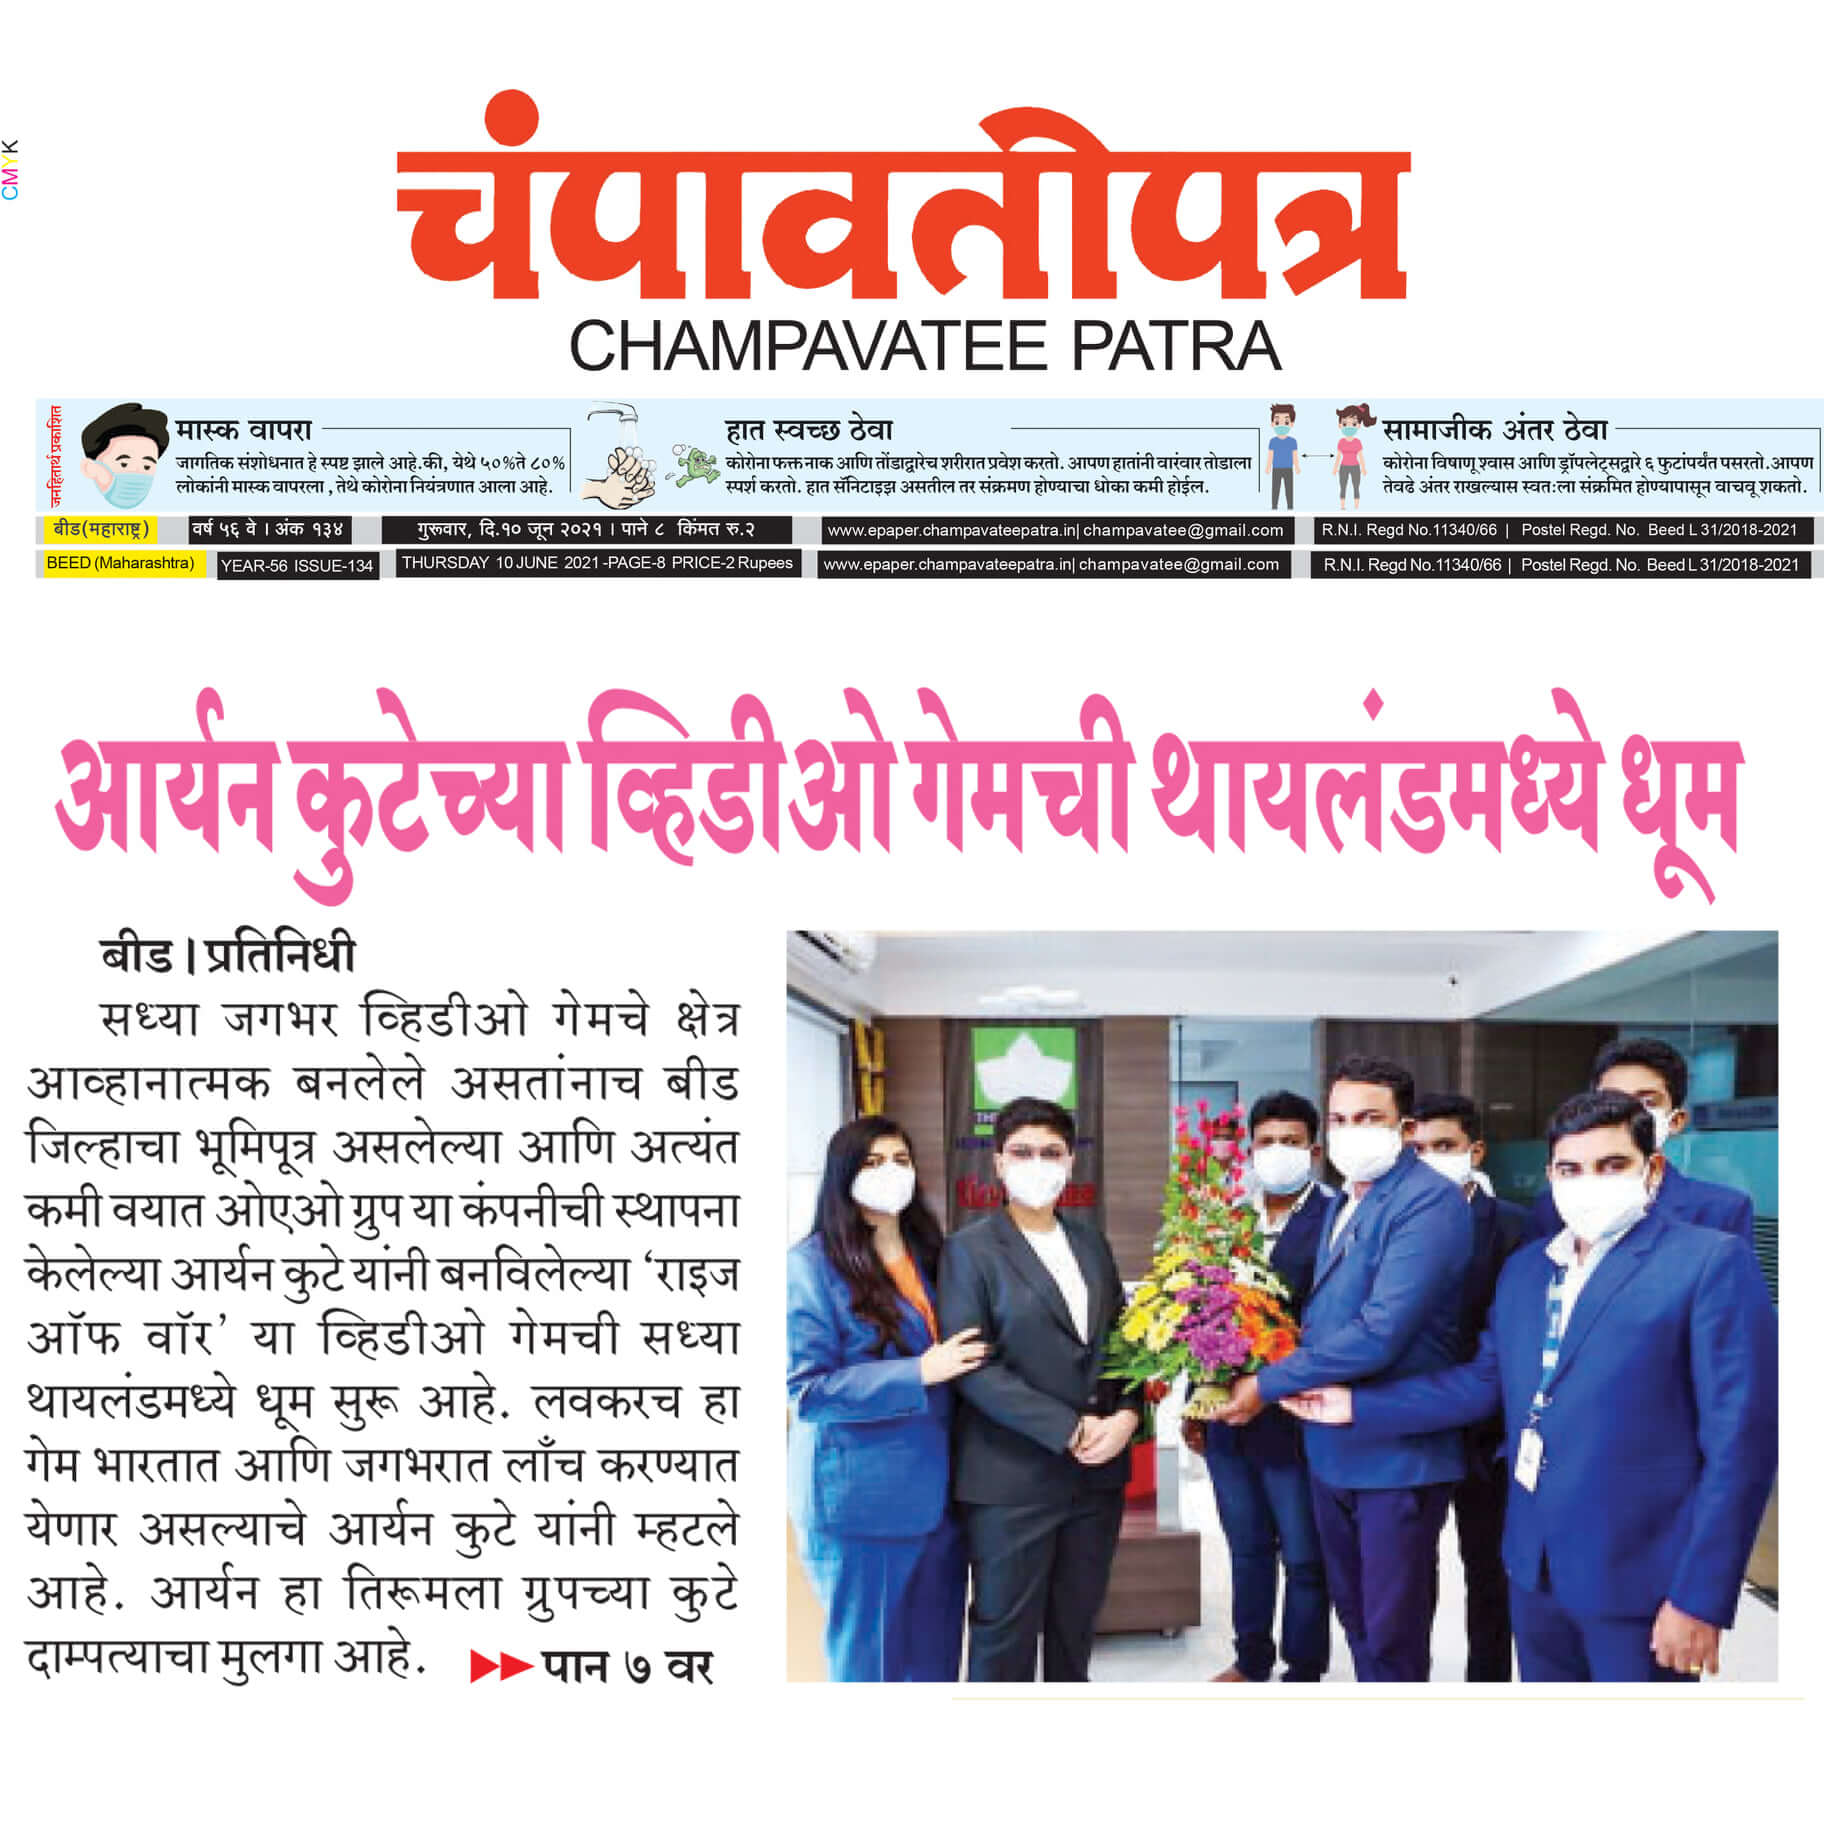 daily champavatipatra highlighted Rise Of Warr game launched in Thailand by OAO INDIA